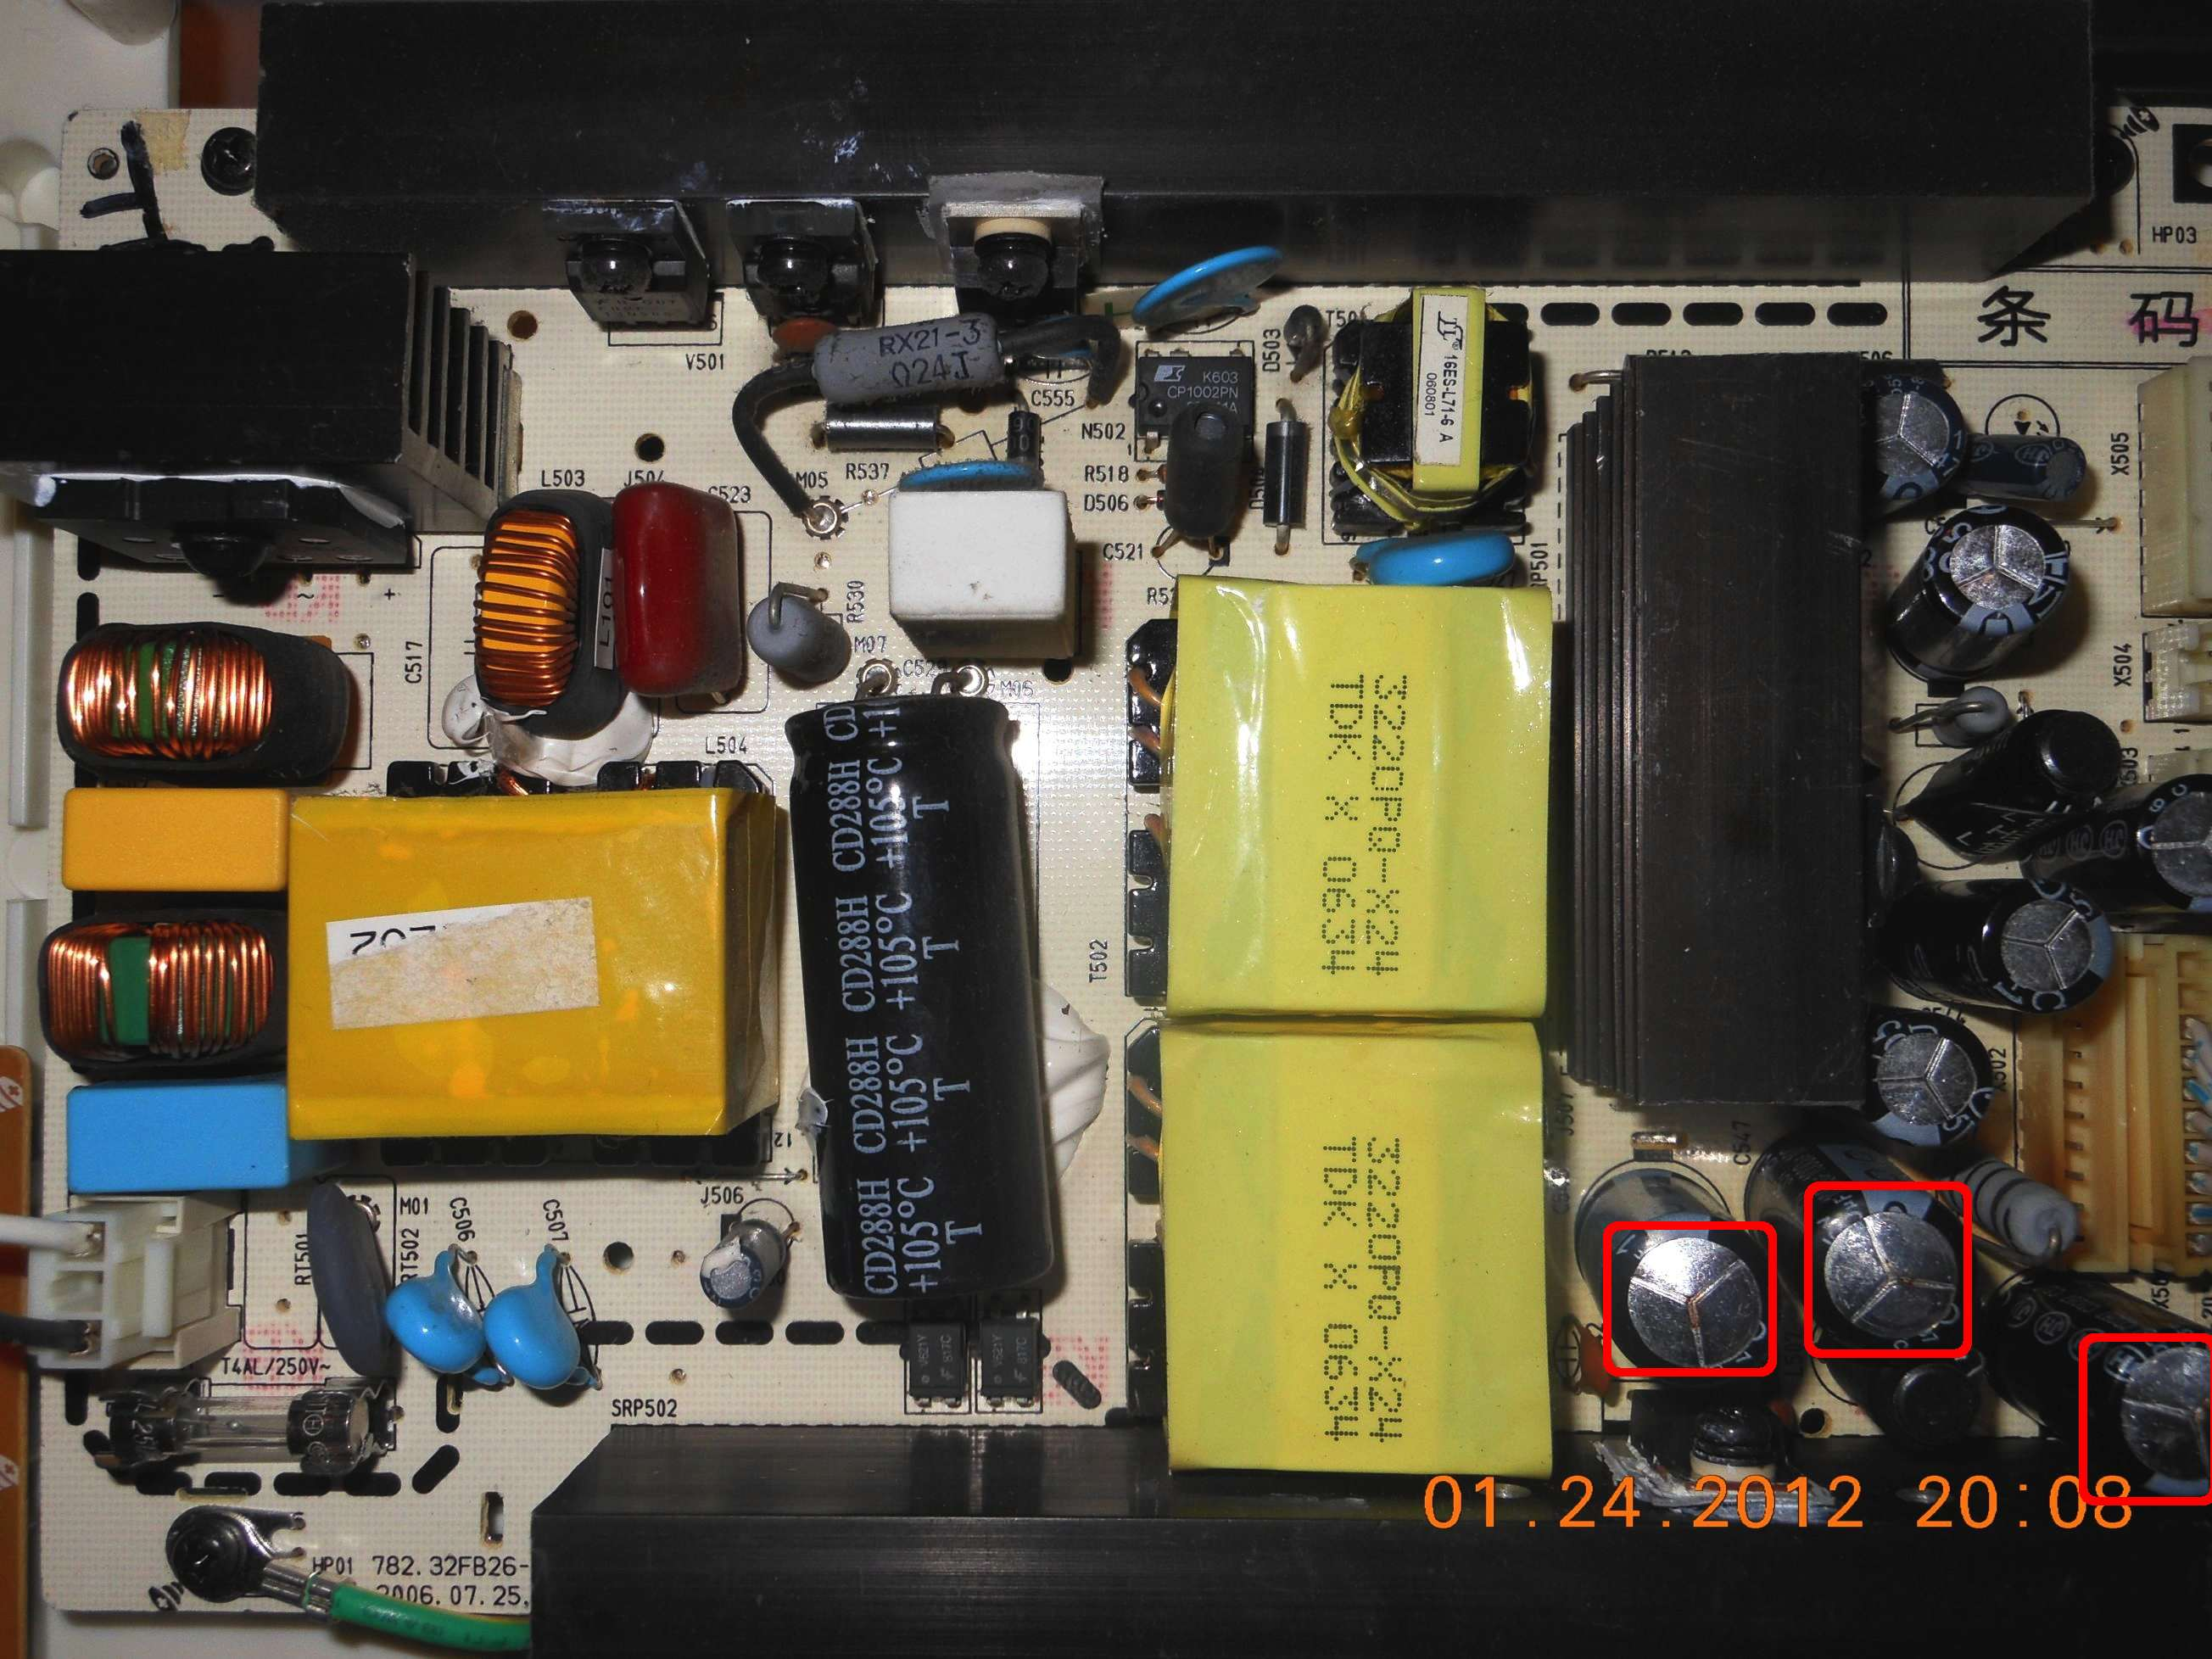 Have insignia NS-32LCD flickering really fast  a power supply